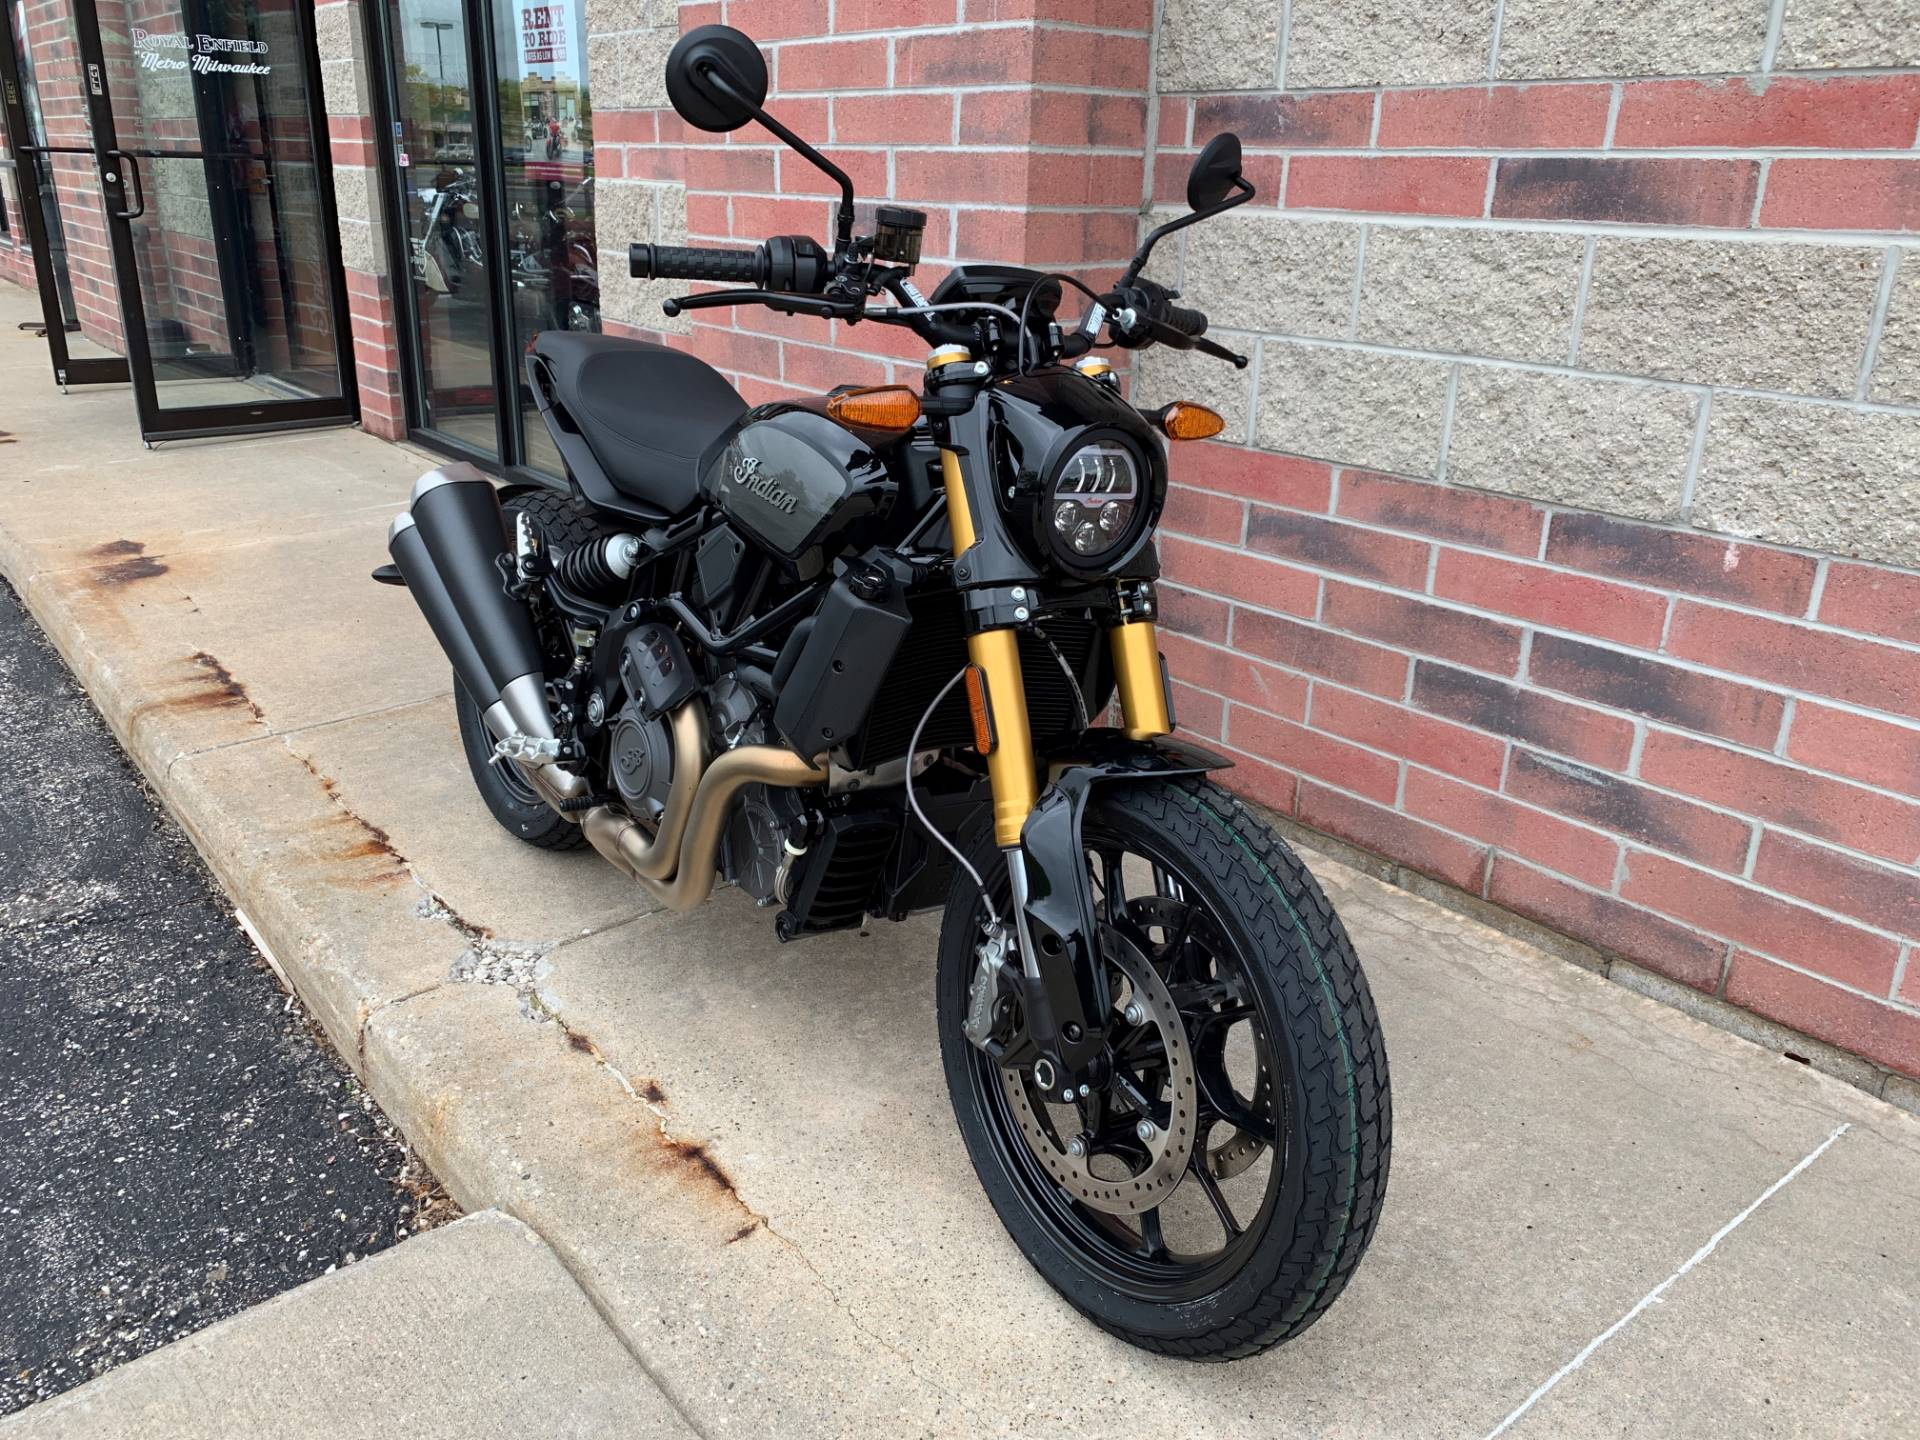 2019 Indian FTR™ 1200 S in Muskego, Wisconsin - Photo 2